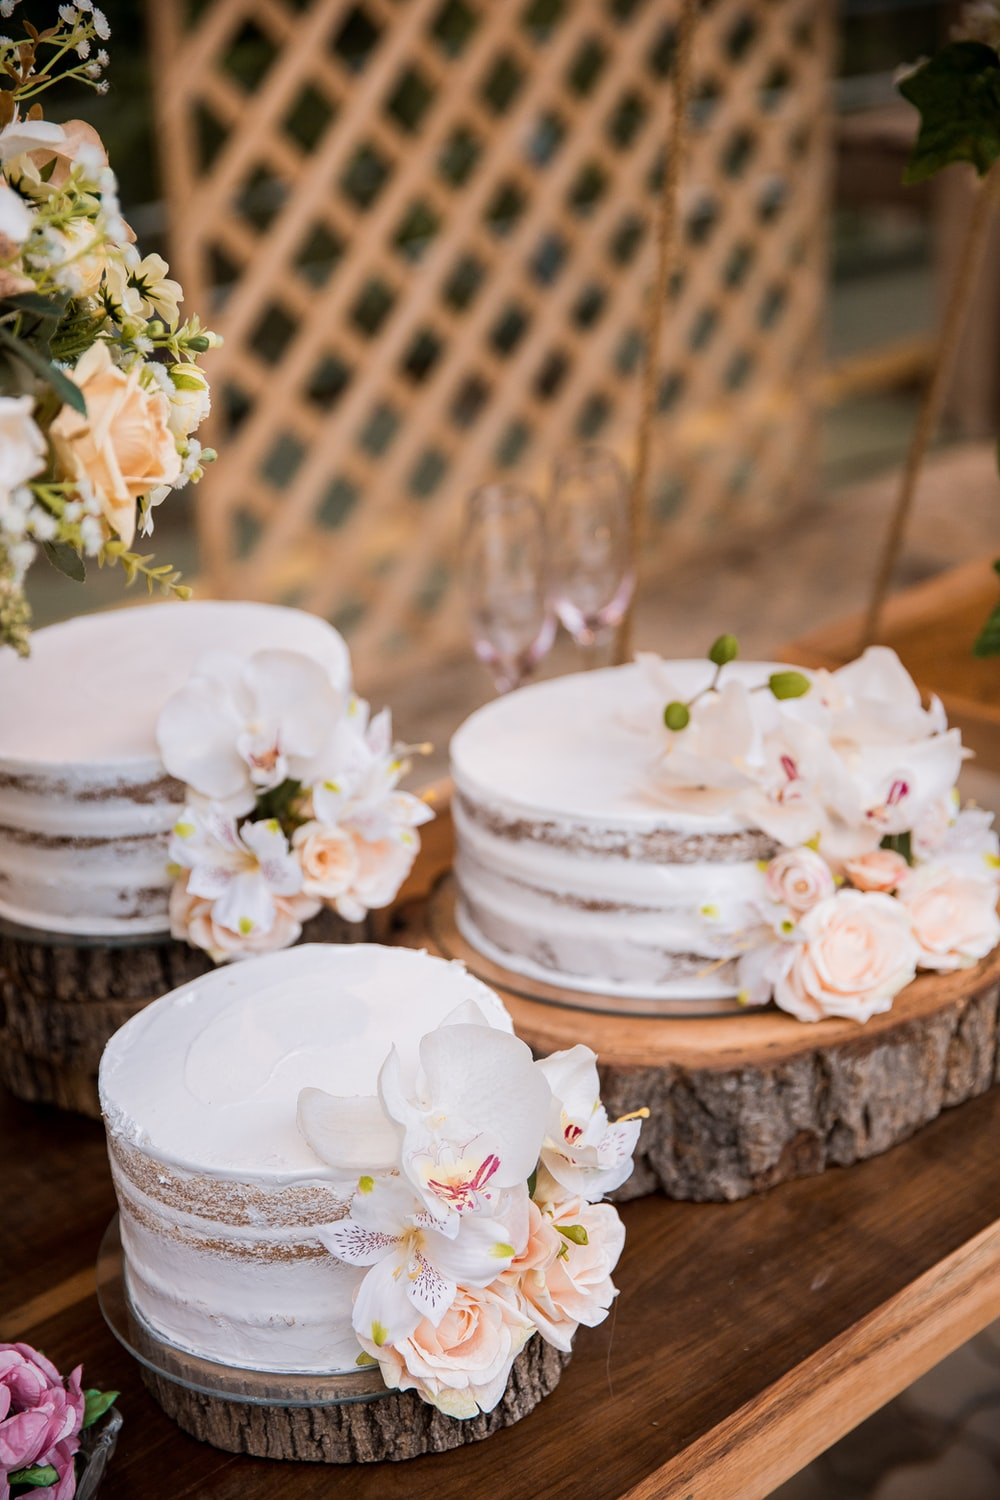 white and pink floral cake on brown wooden table